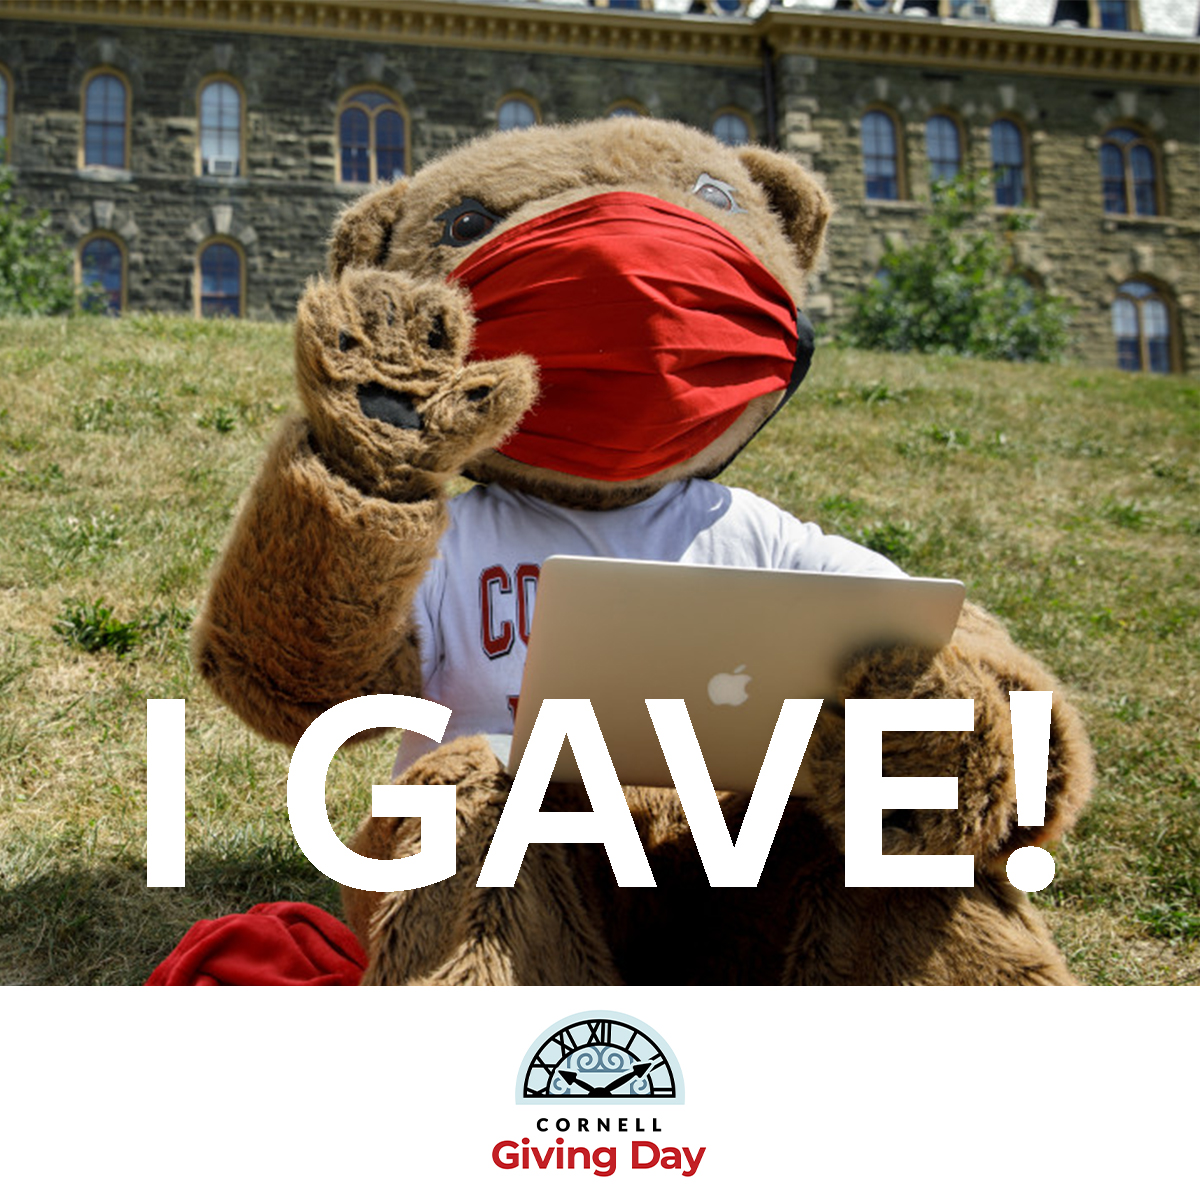 Donor Badge 2 -- Touchdown wearing a mask and waving saying I GAVE with Cornell Giving Day logo